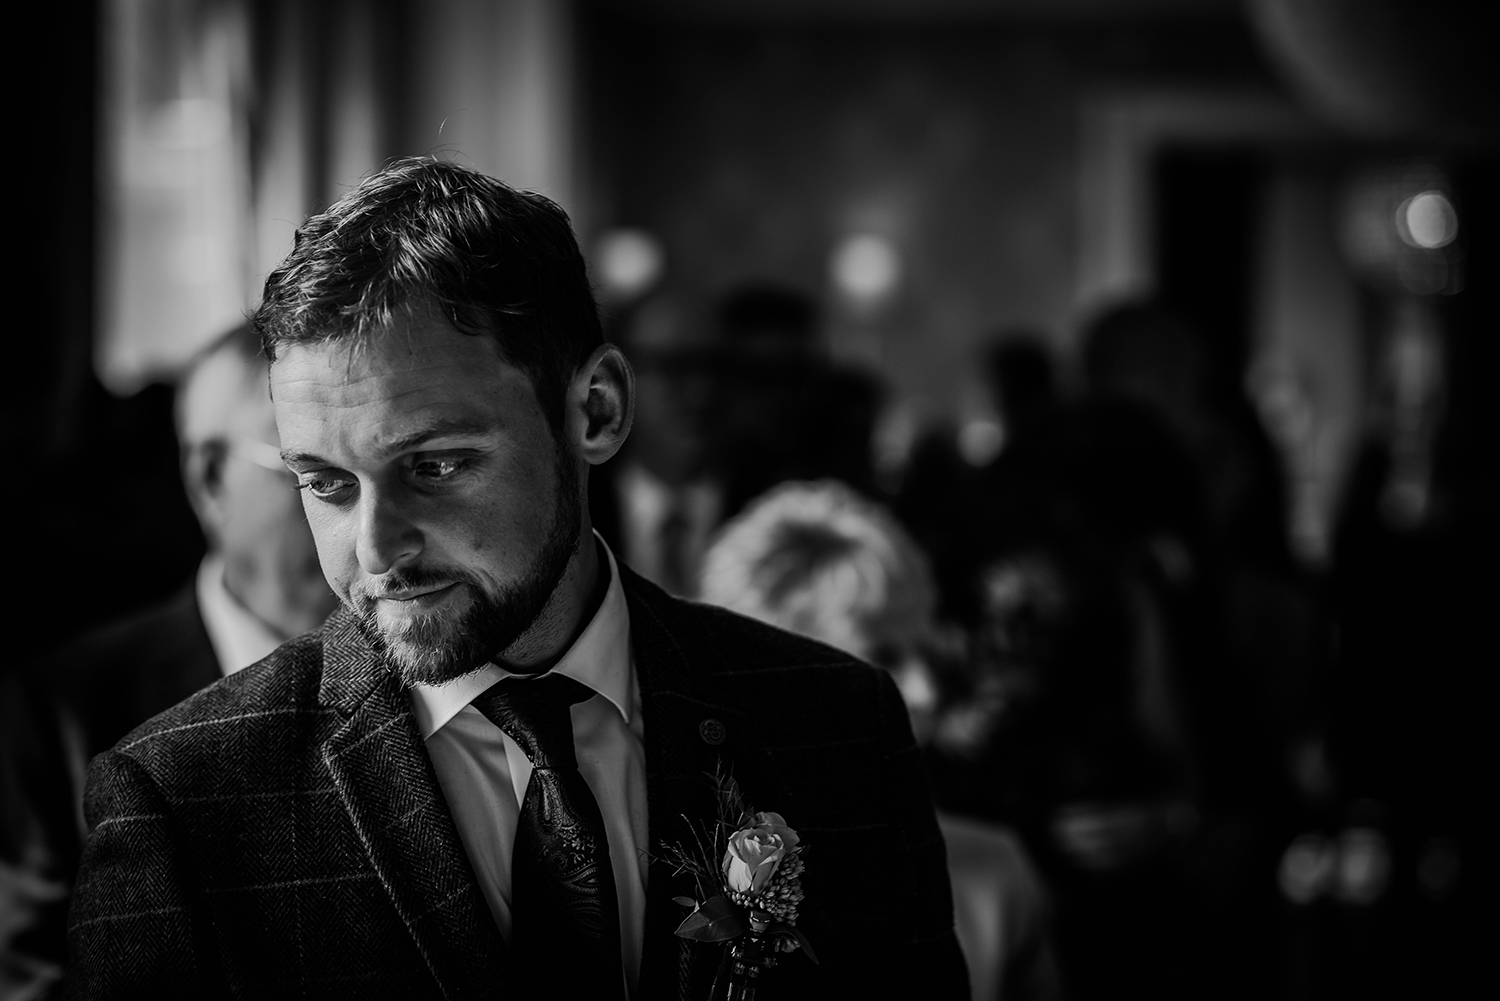 bw photo of the groom waiting for the bride